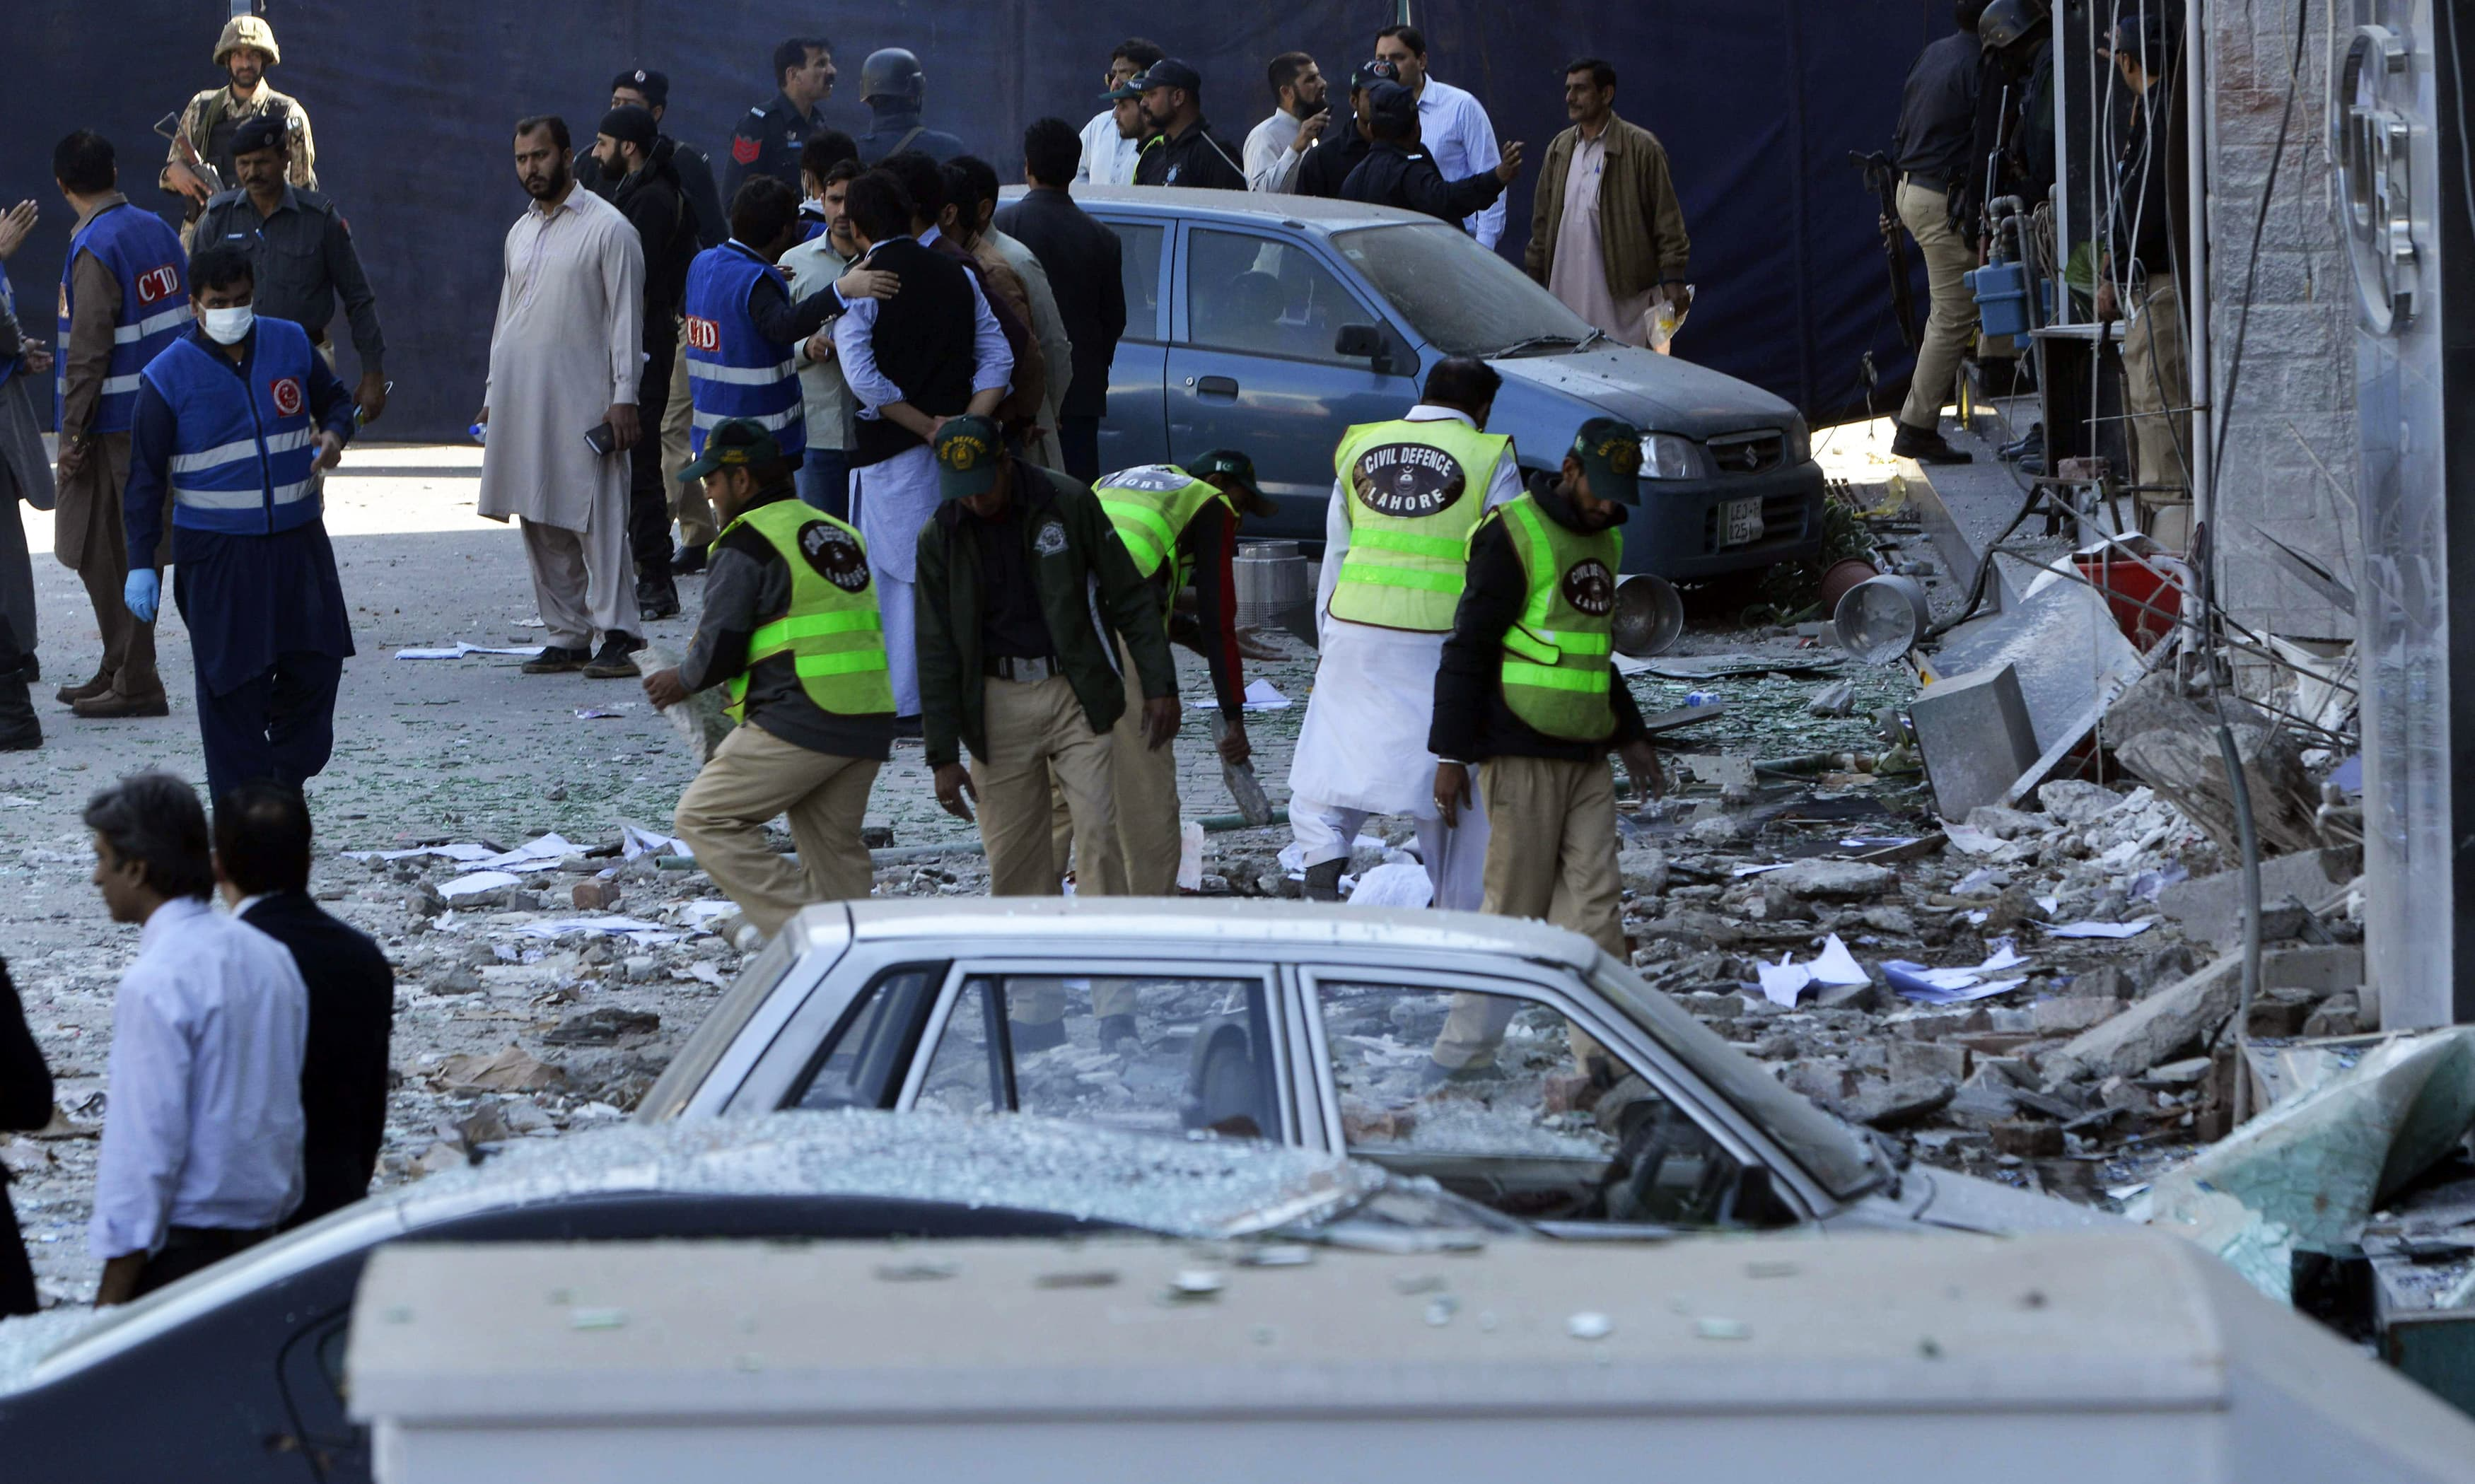 Officials examine the site after the bomb attack in Lahore. —AFP